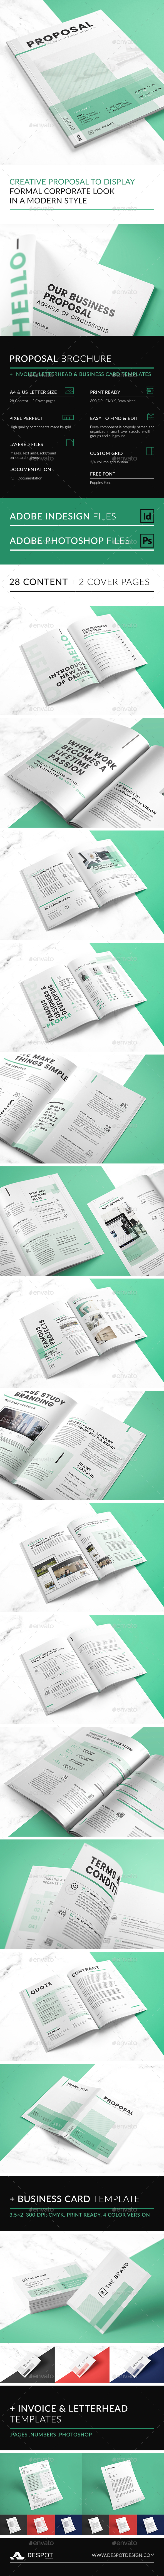 The Brand Proposal - Proposals & Invoices Stationery